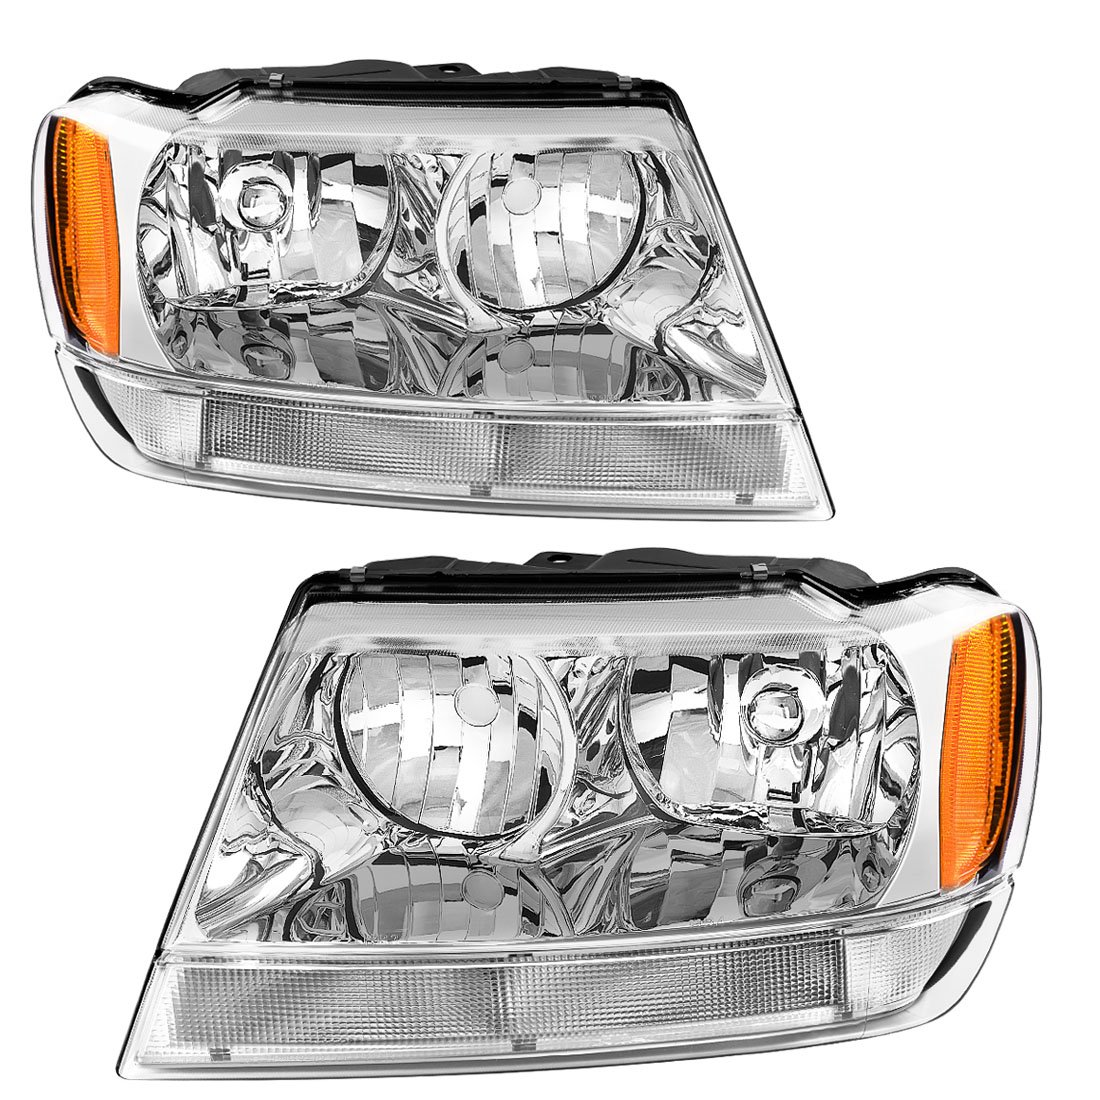 For 99 00 01 02 03 04 Jeep Grand Cherokee Headlight Assembly, OE Projector Headlamp, Amber Reflector Chrome Housing, One-Year Limited Warranty(Driver and Passenger Side) AUTOSAVER88 4333011045